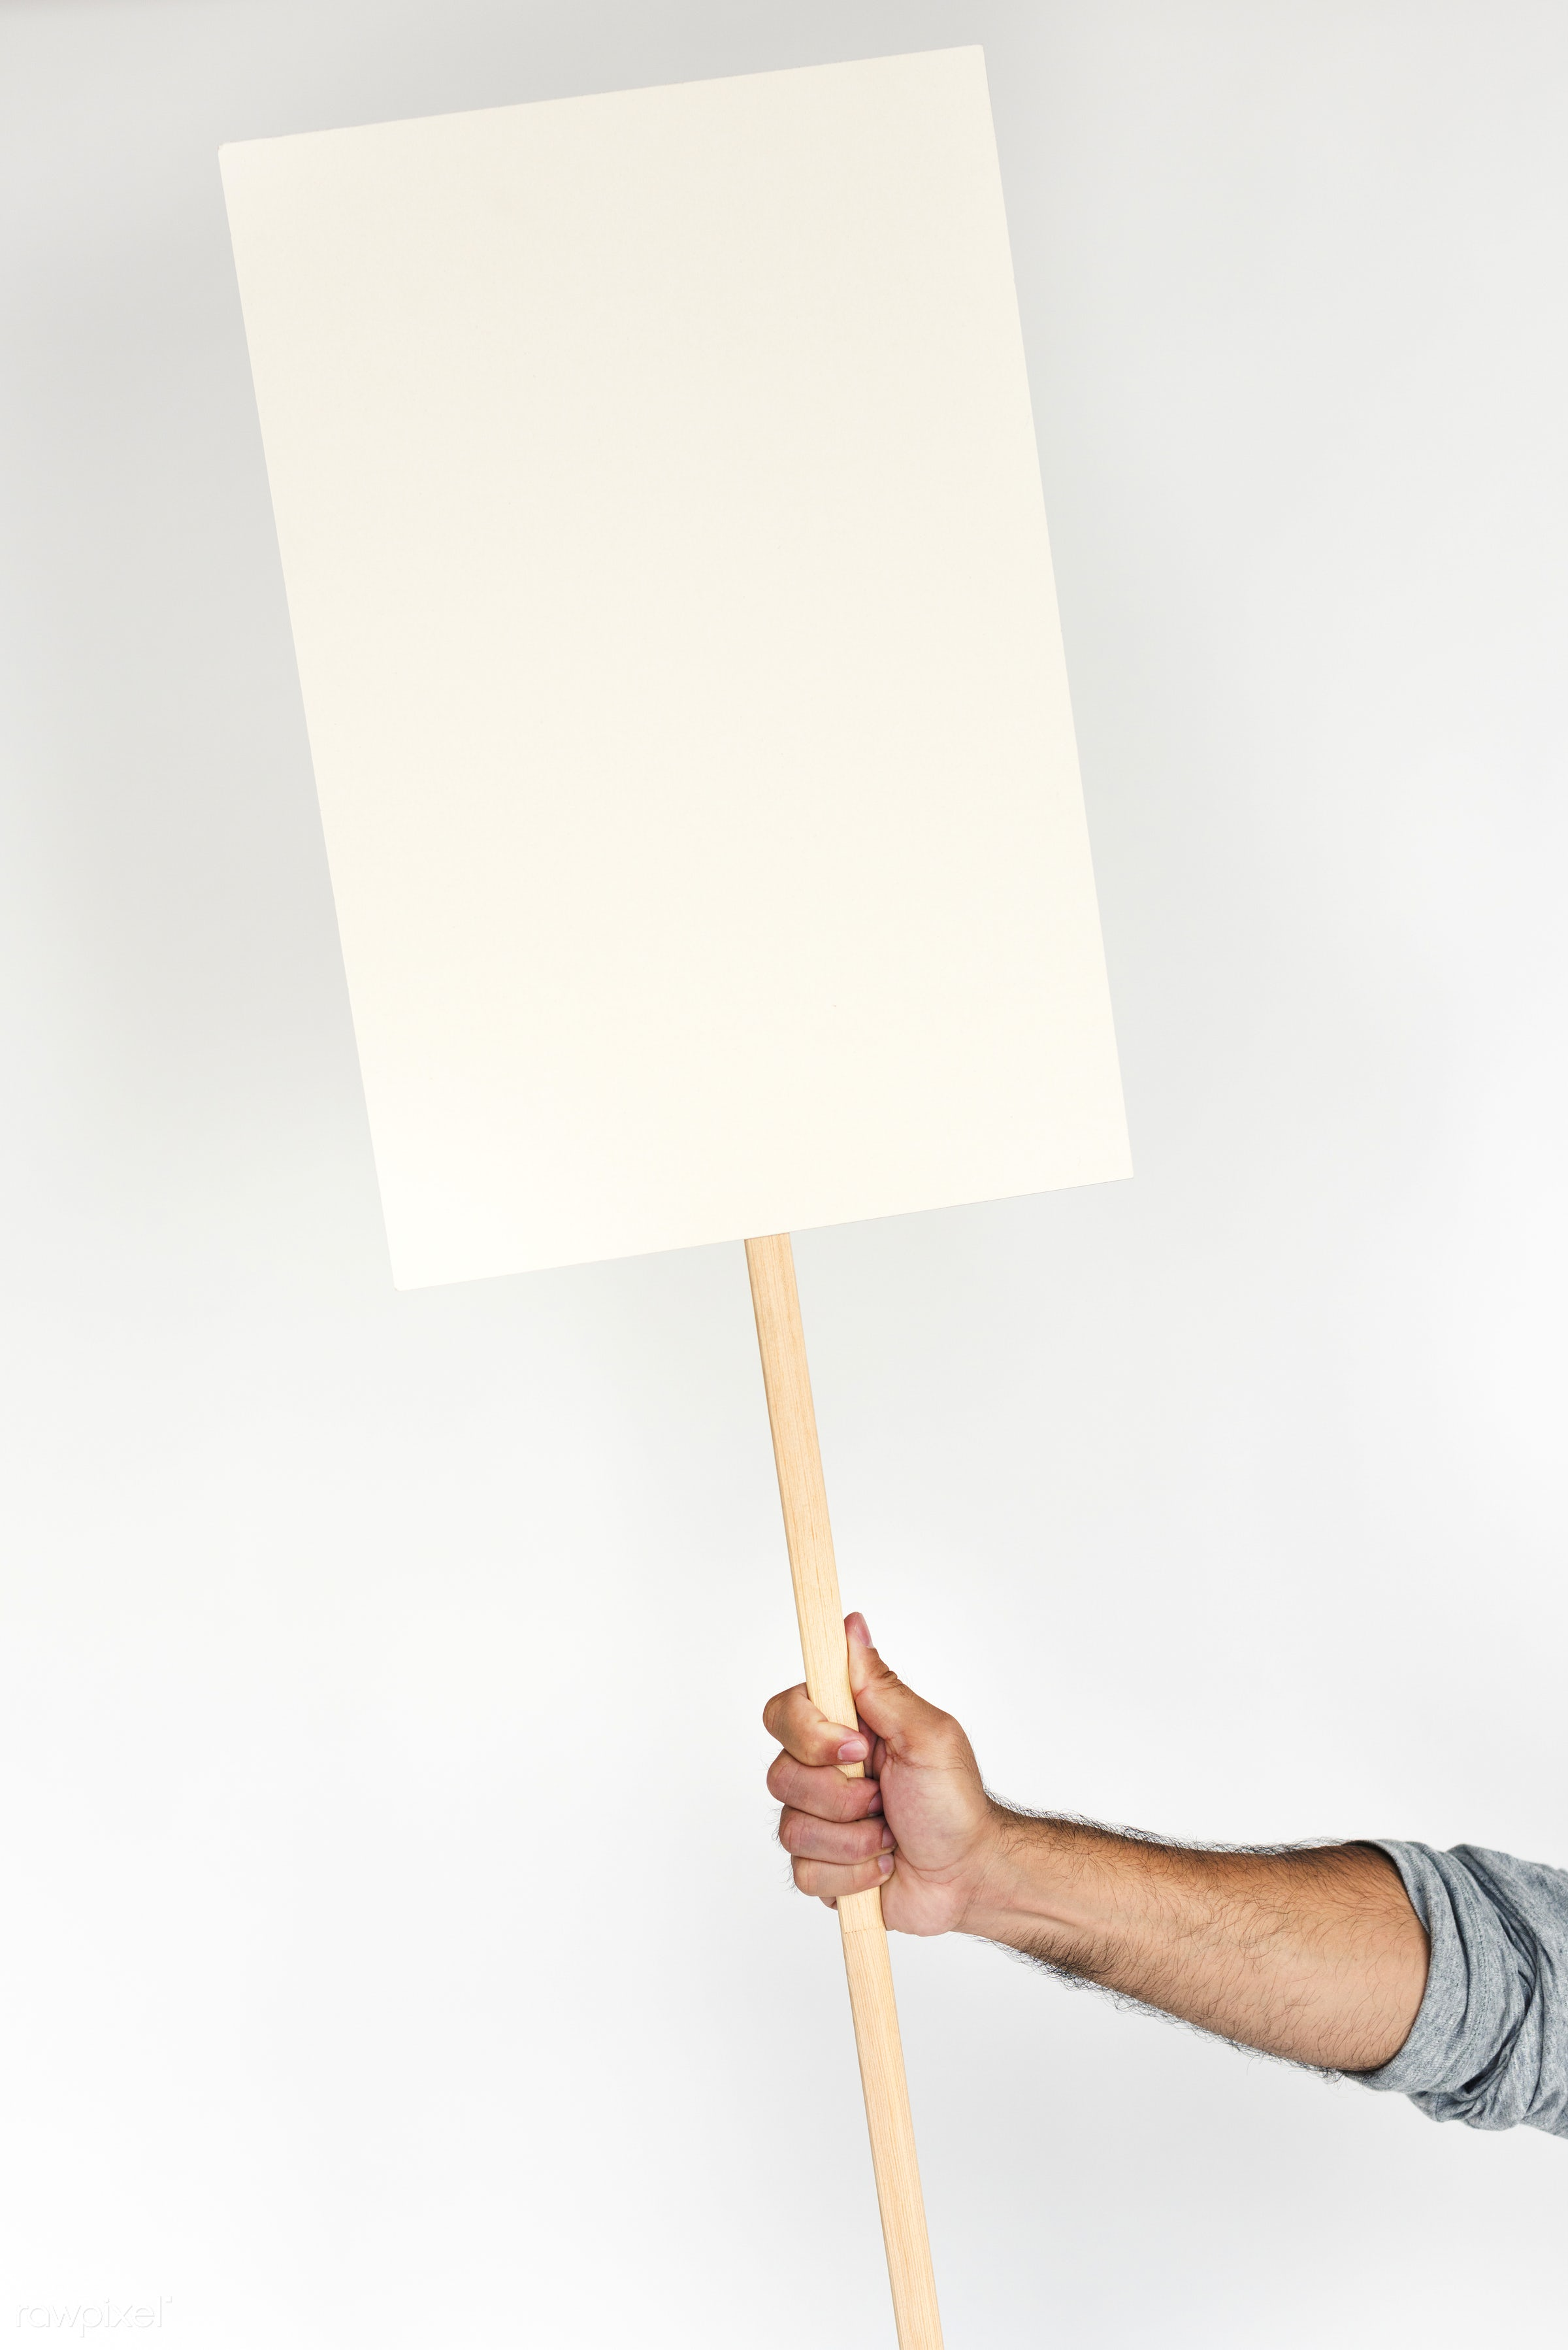 studio, expression, person, copy space, holding, isolated on white, protest, protester, people, placard, hand, five fingers...